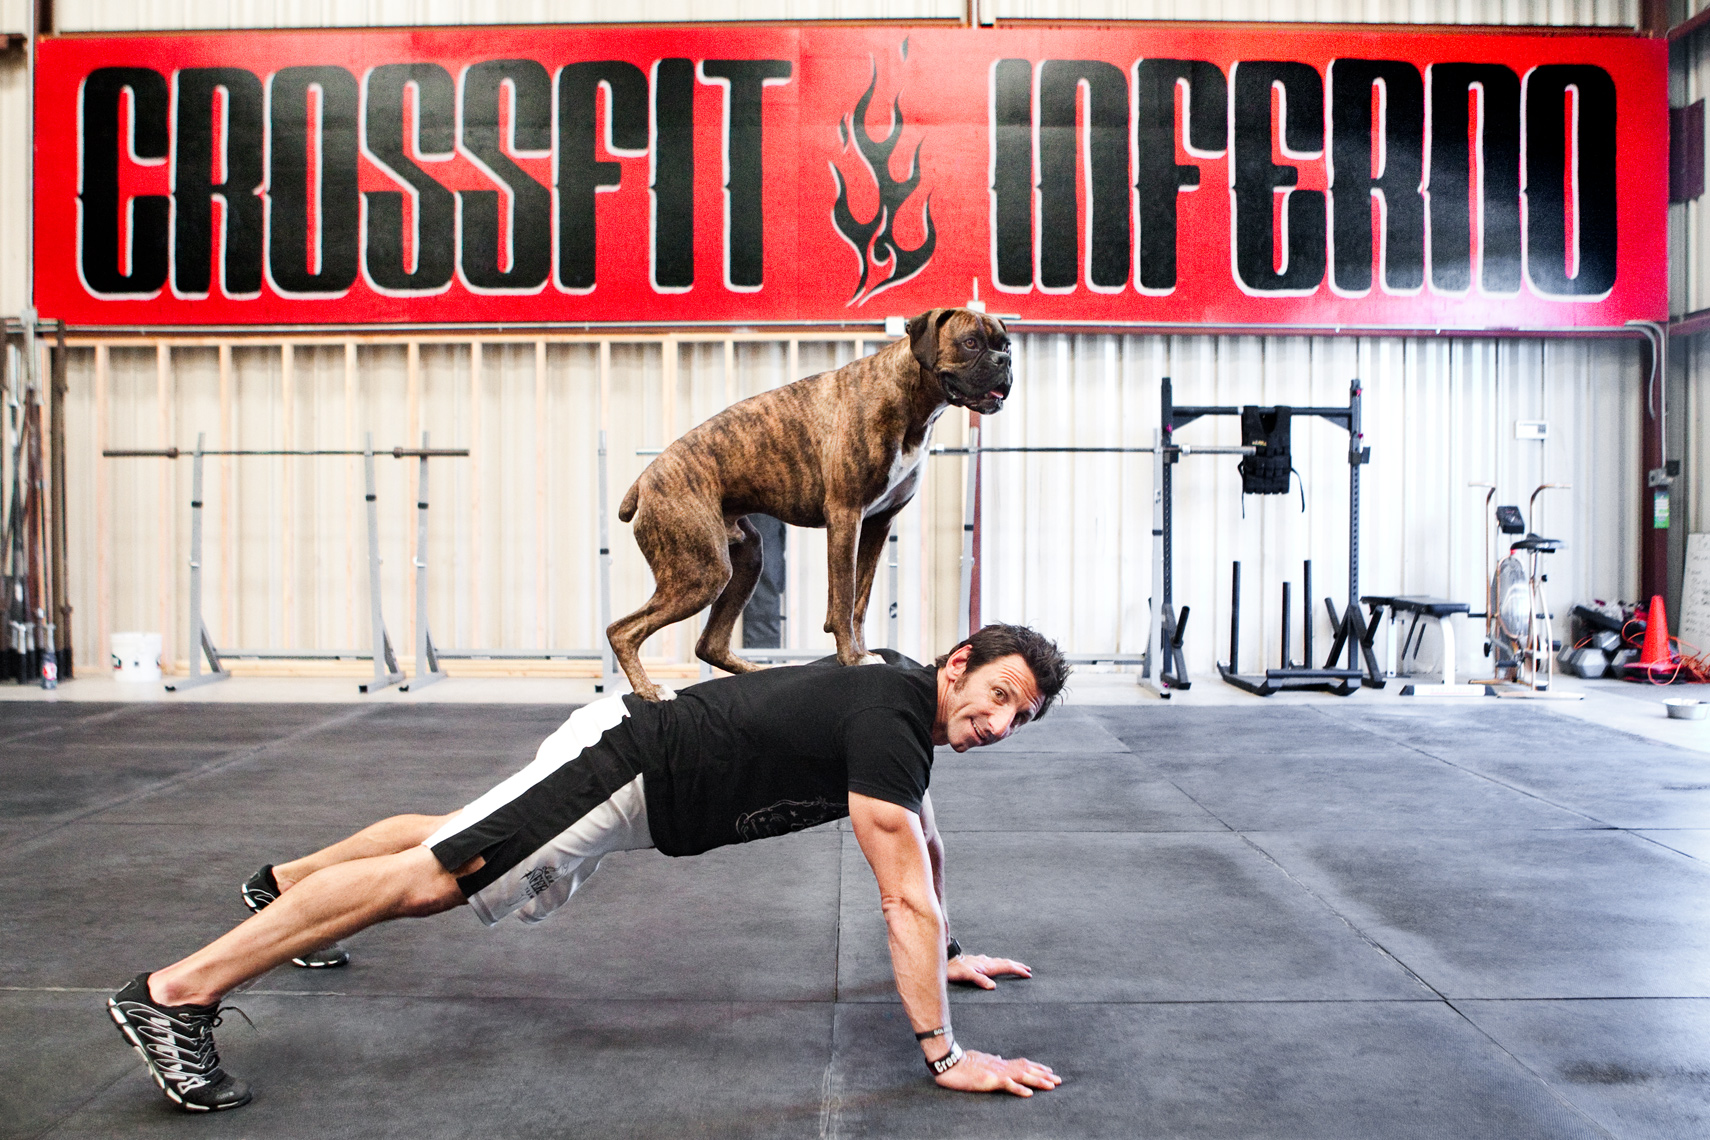 Crossfit, LA Dog Photography, Michael Brian, Los Angeles, Sports, Bill Grundler, pushup with Boxer on back, Crossfit